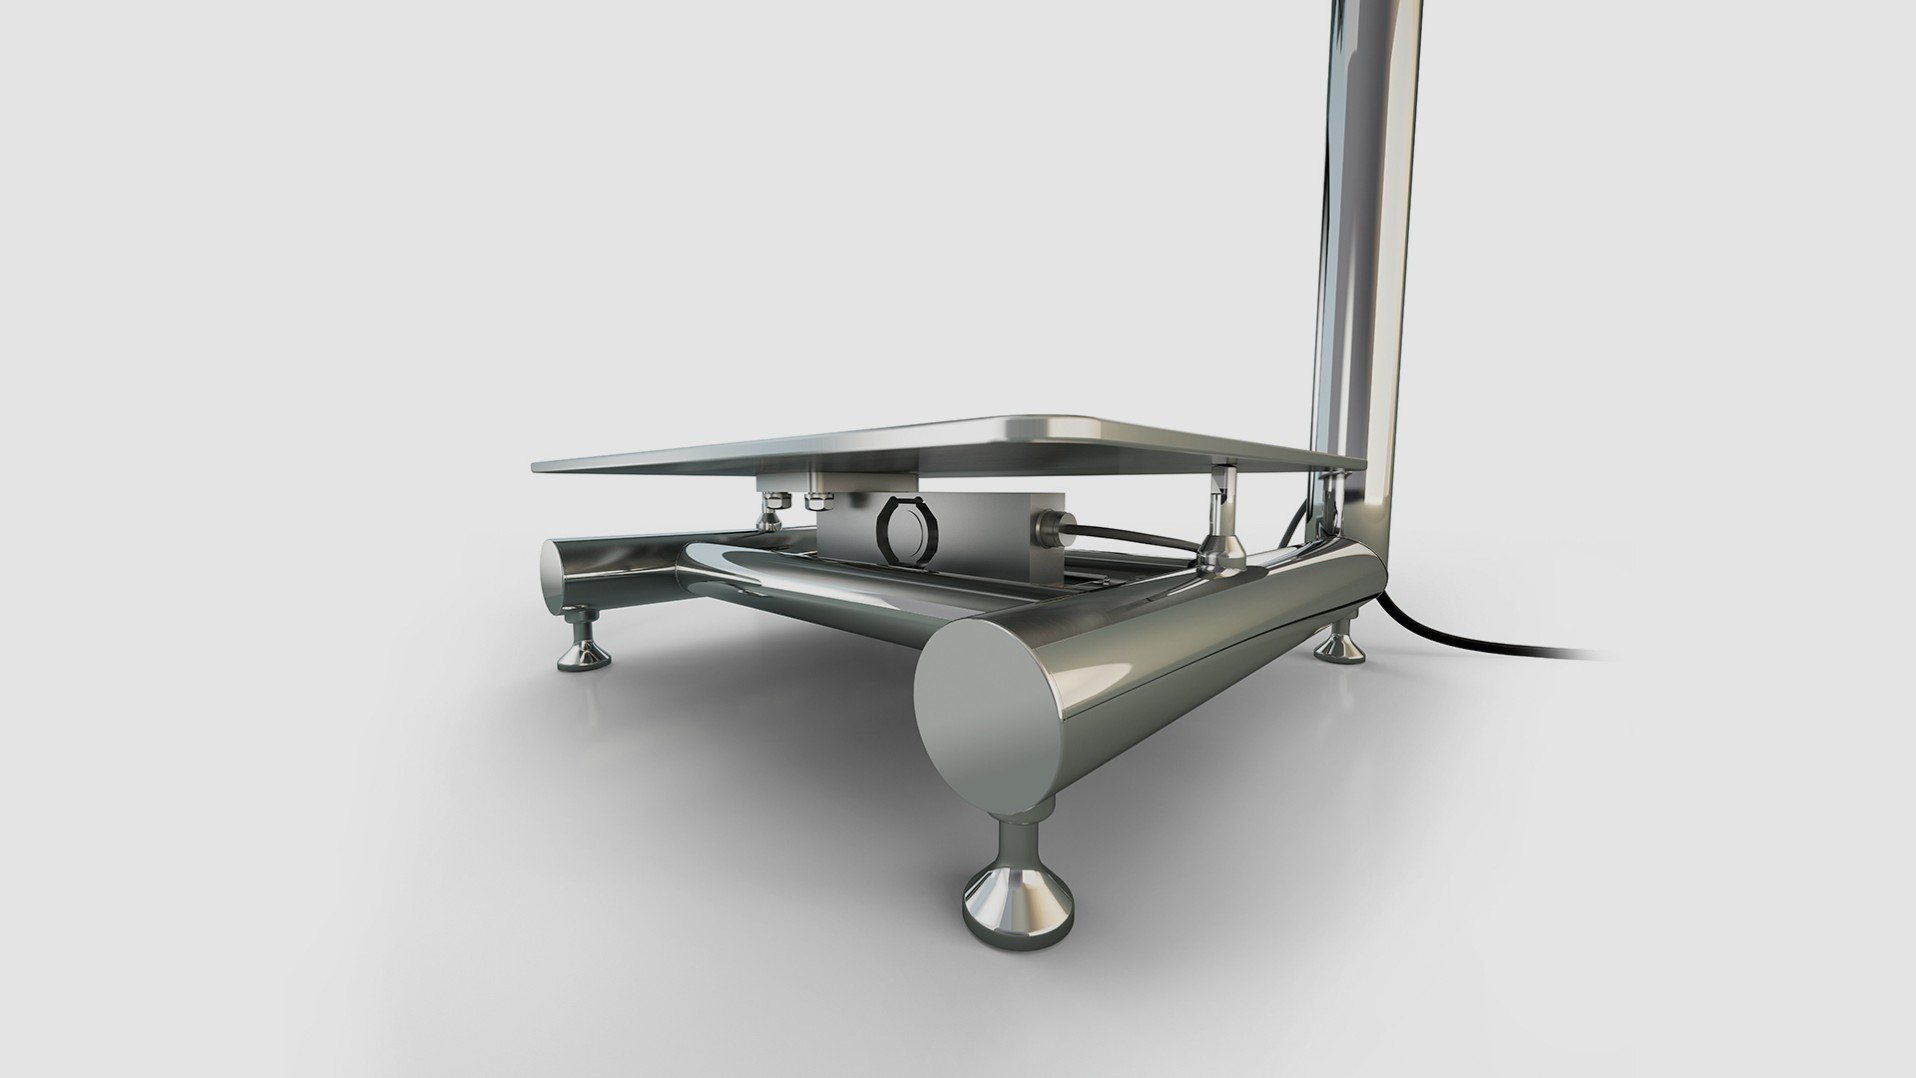 Hygienic scale iL Professional; stainless steel weighing platform